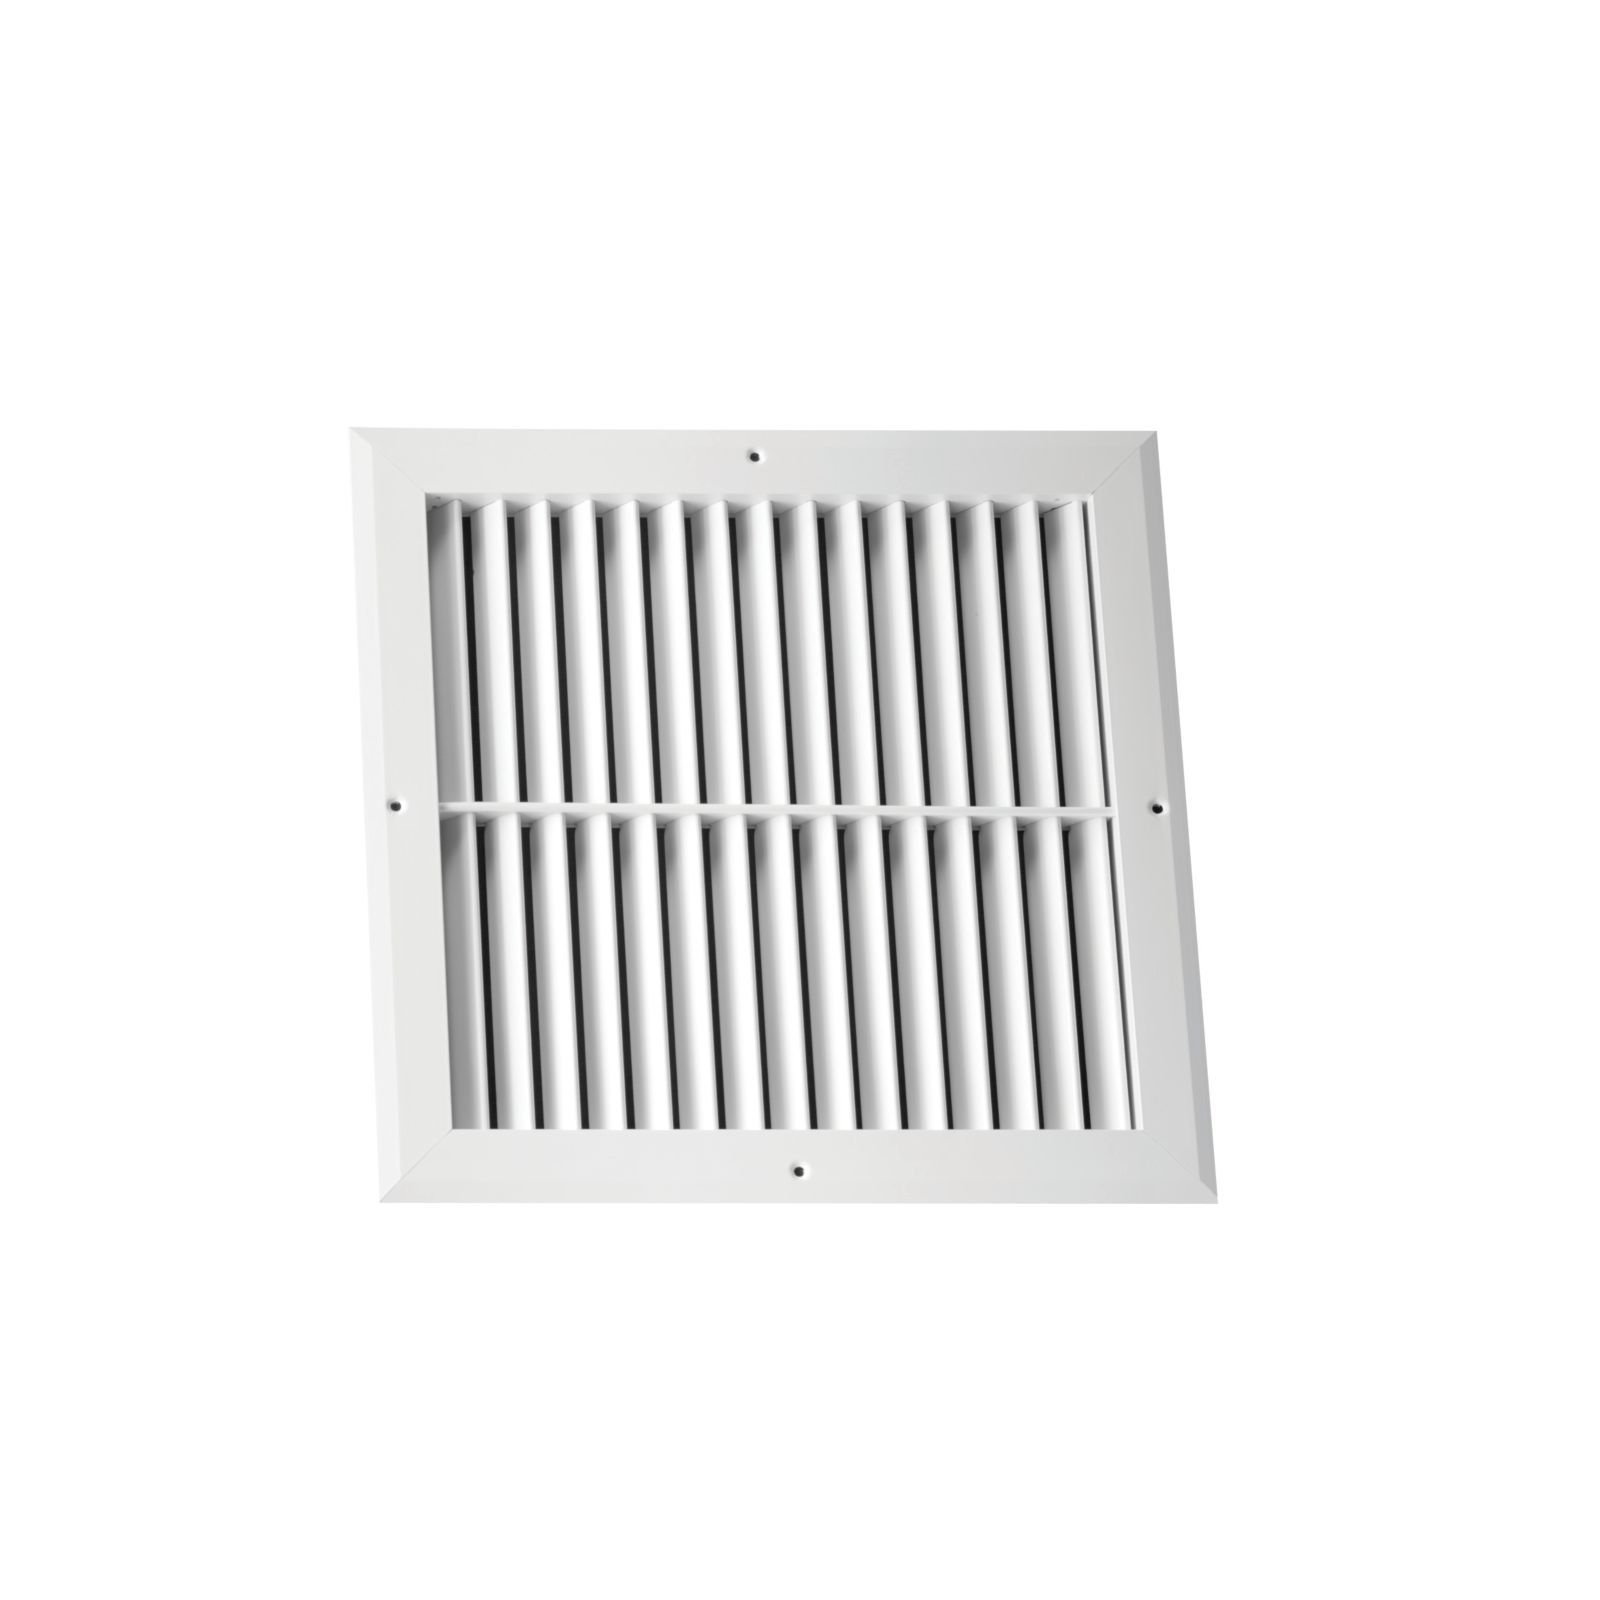 "Hart & Cooley 064029 - Aluminum Return Air Grille, 45-Degree Fixed Blade, White Finish, 16"" X 16"""